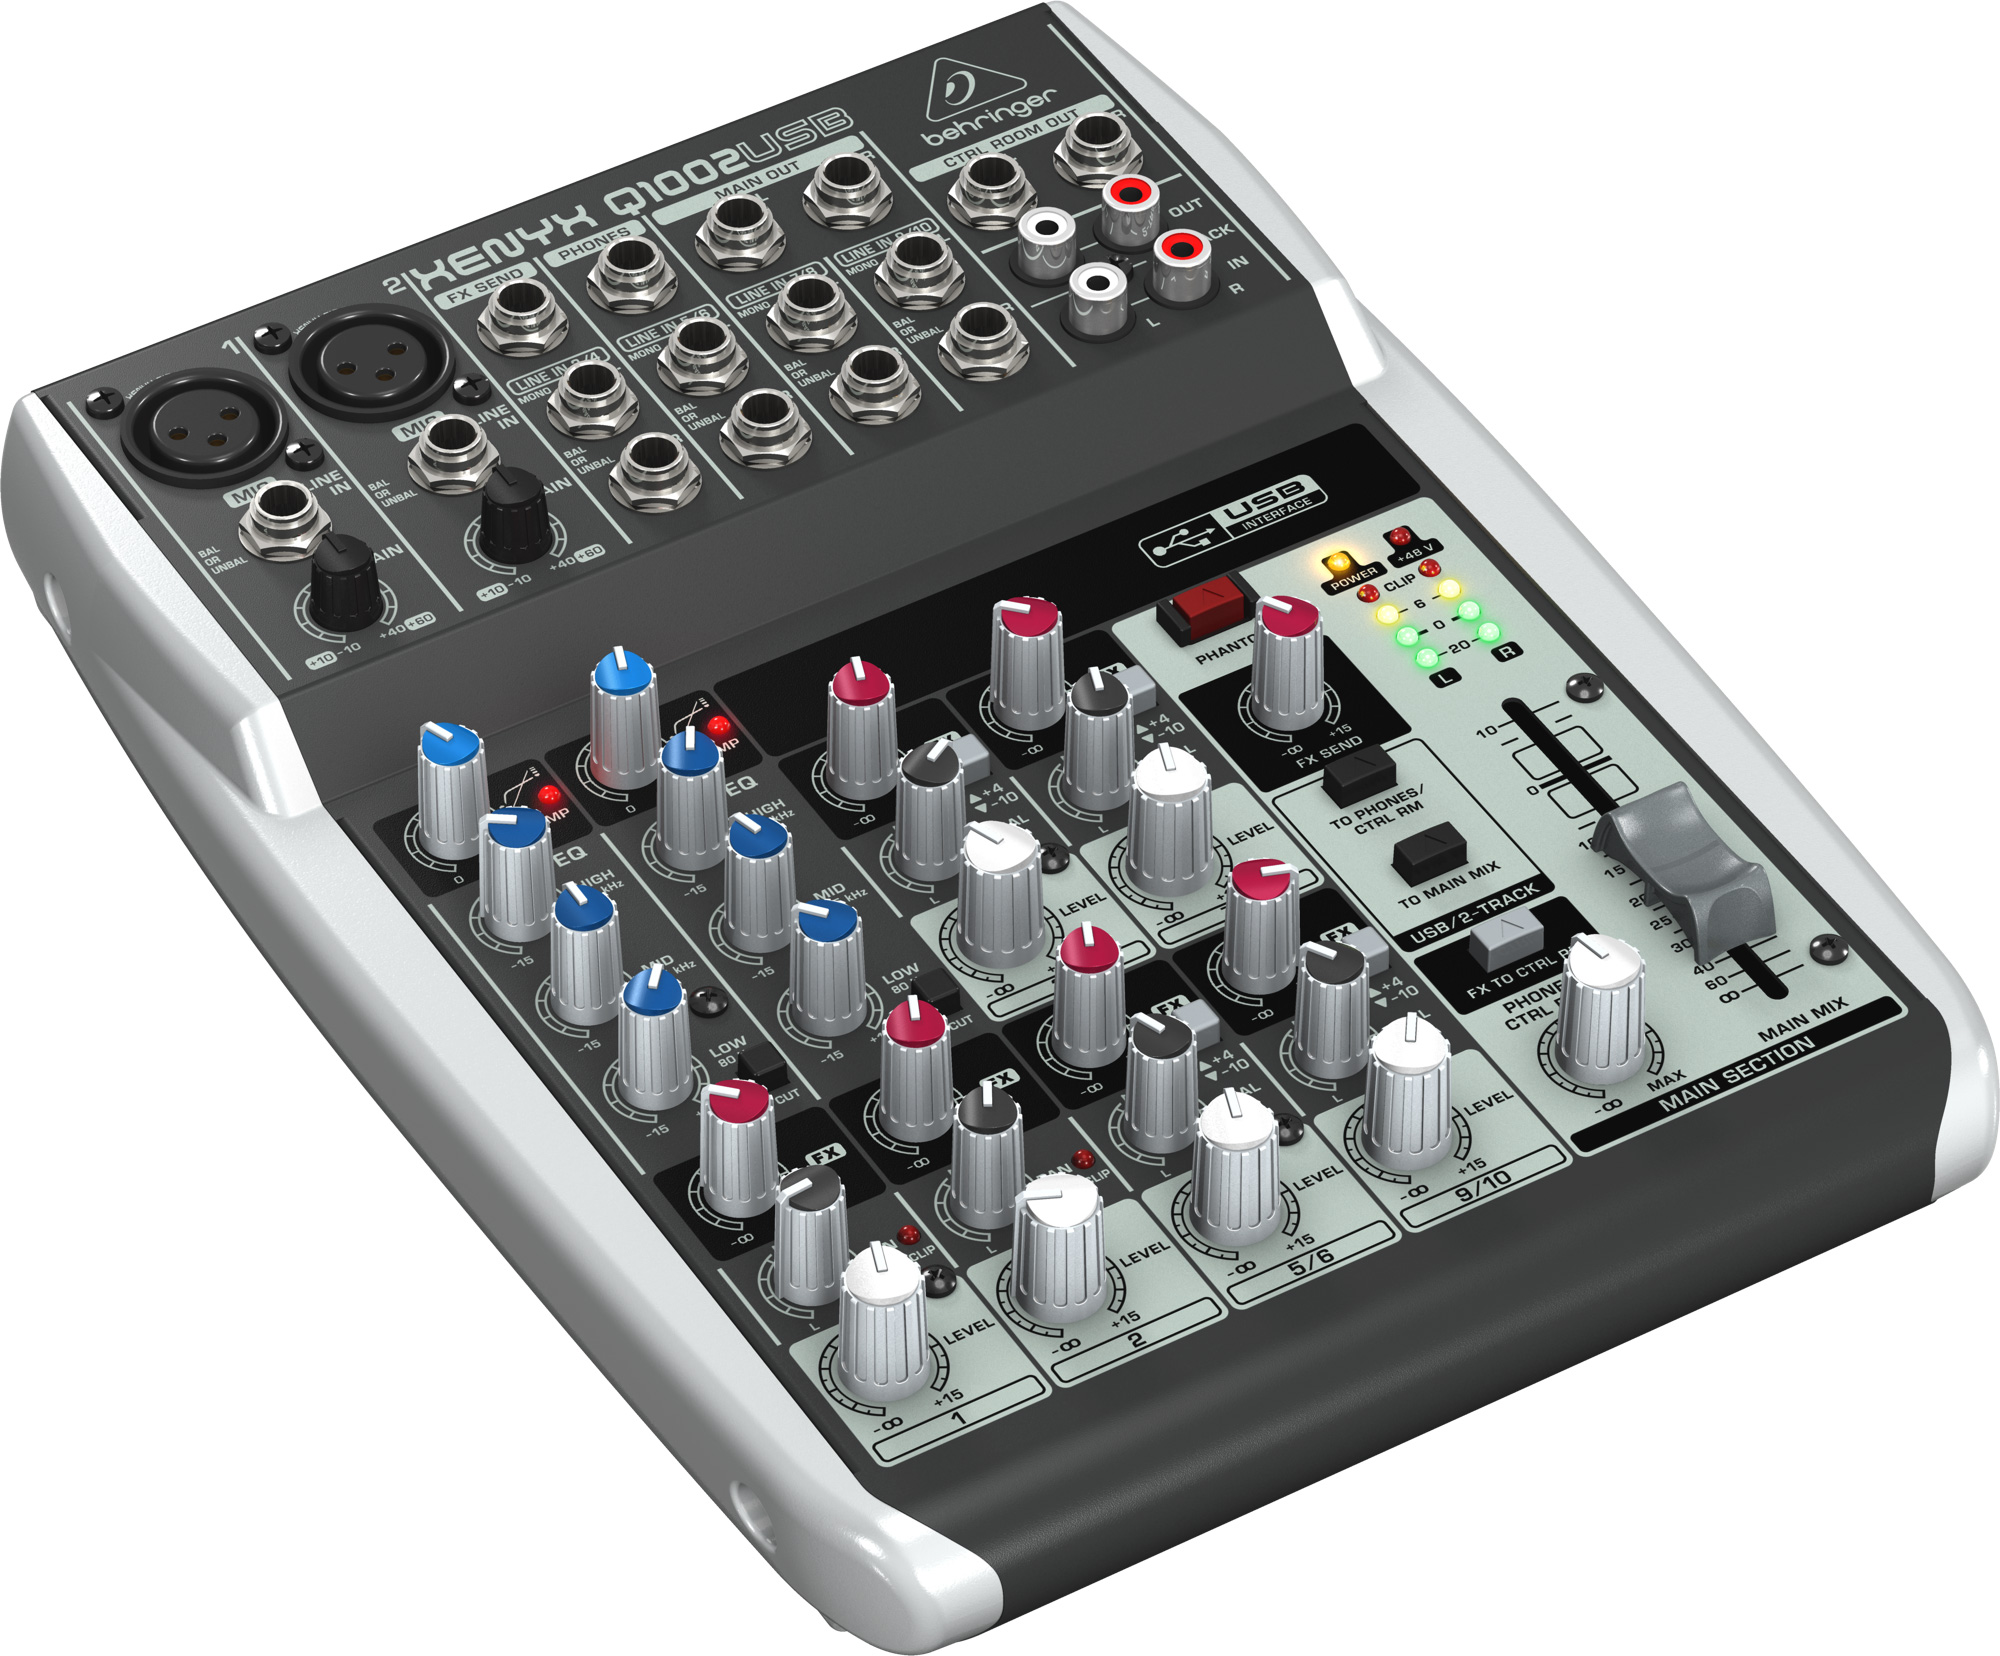 behringer q1002usb portable 10 input 2 bus analog audio mixer with usb. Black Bedroom Furniture Sets. Home Design Ideas